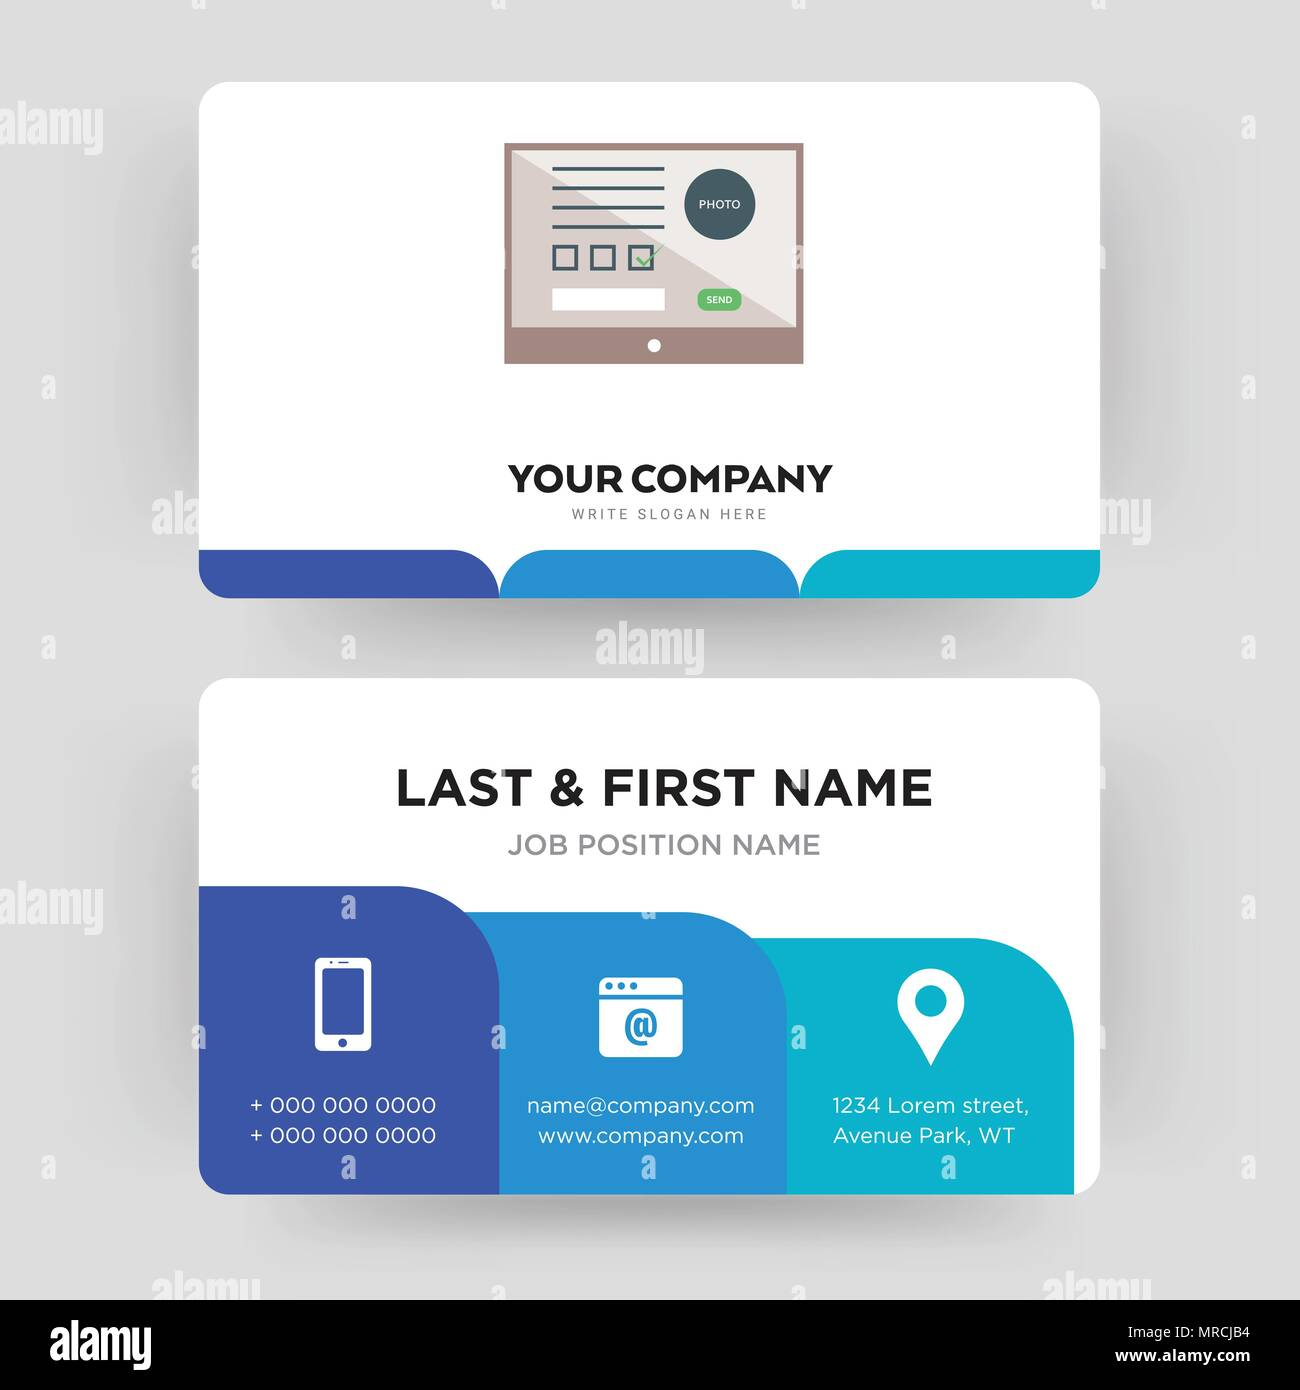 Online form business card design template visiting for your online form business card design template visiting for your company modern creative and clean identity card vector wajeb Image collections